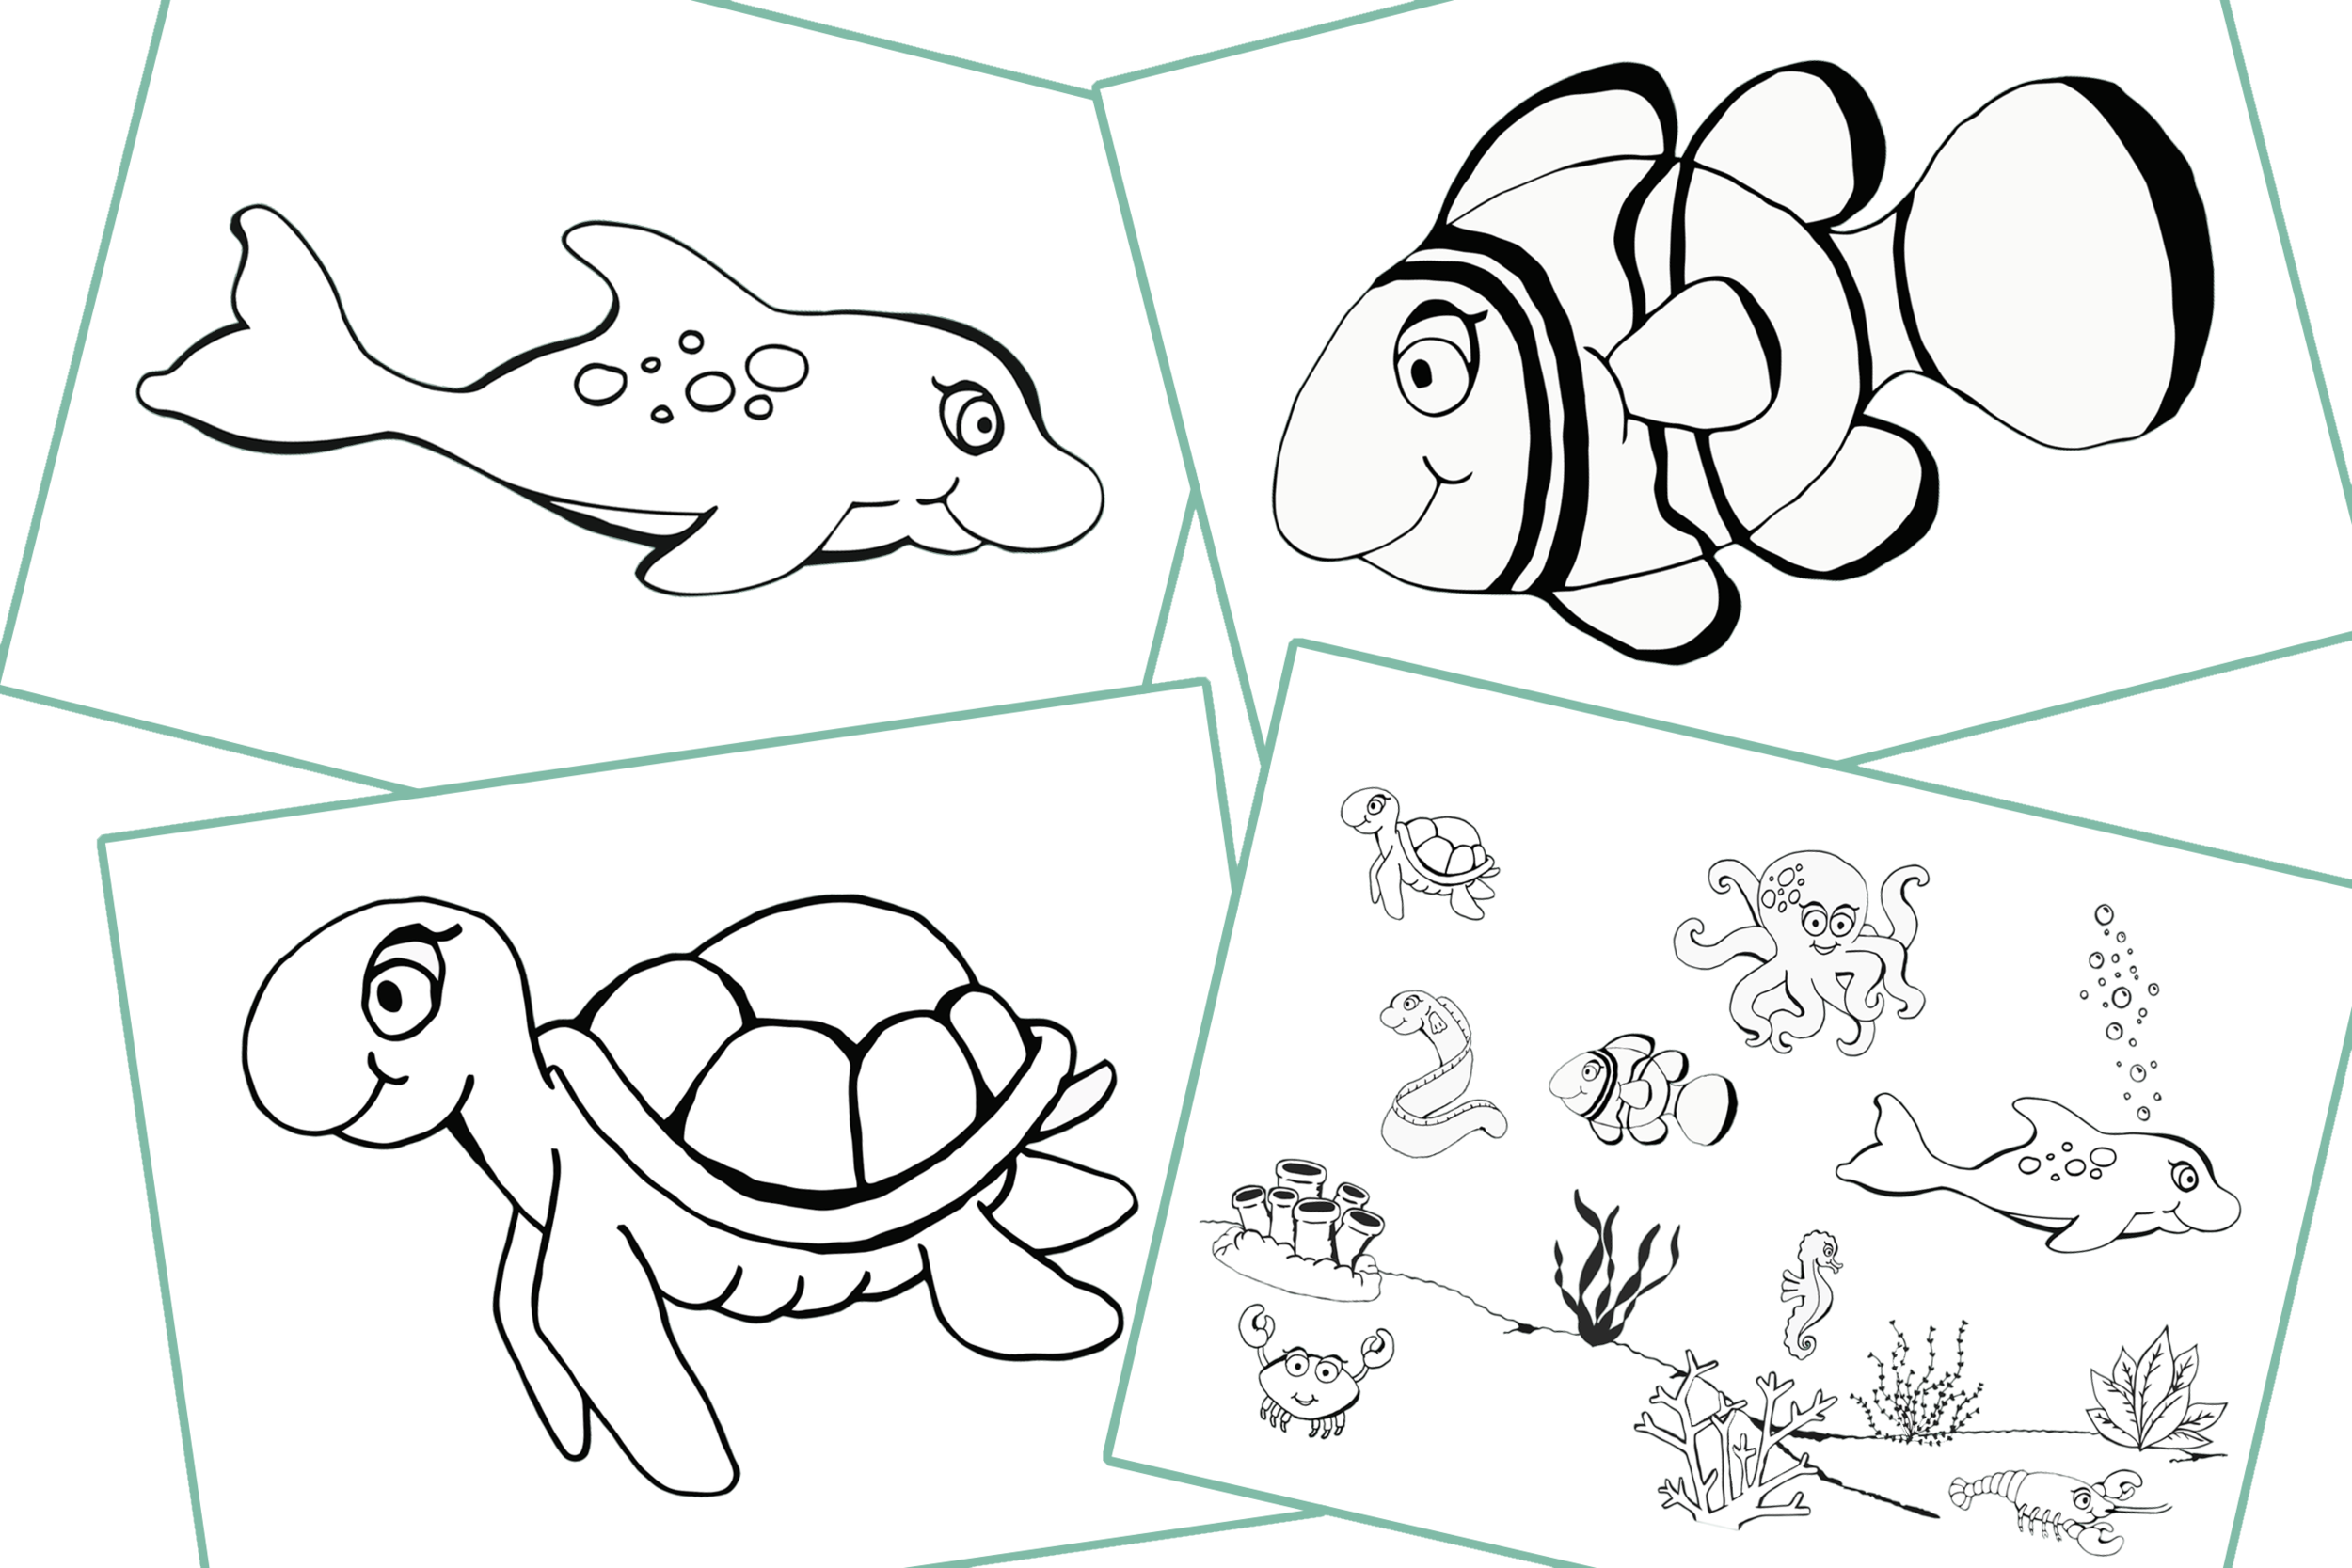 Sea Animals/Creatures Theme/Topic Colouring Pages/Activity